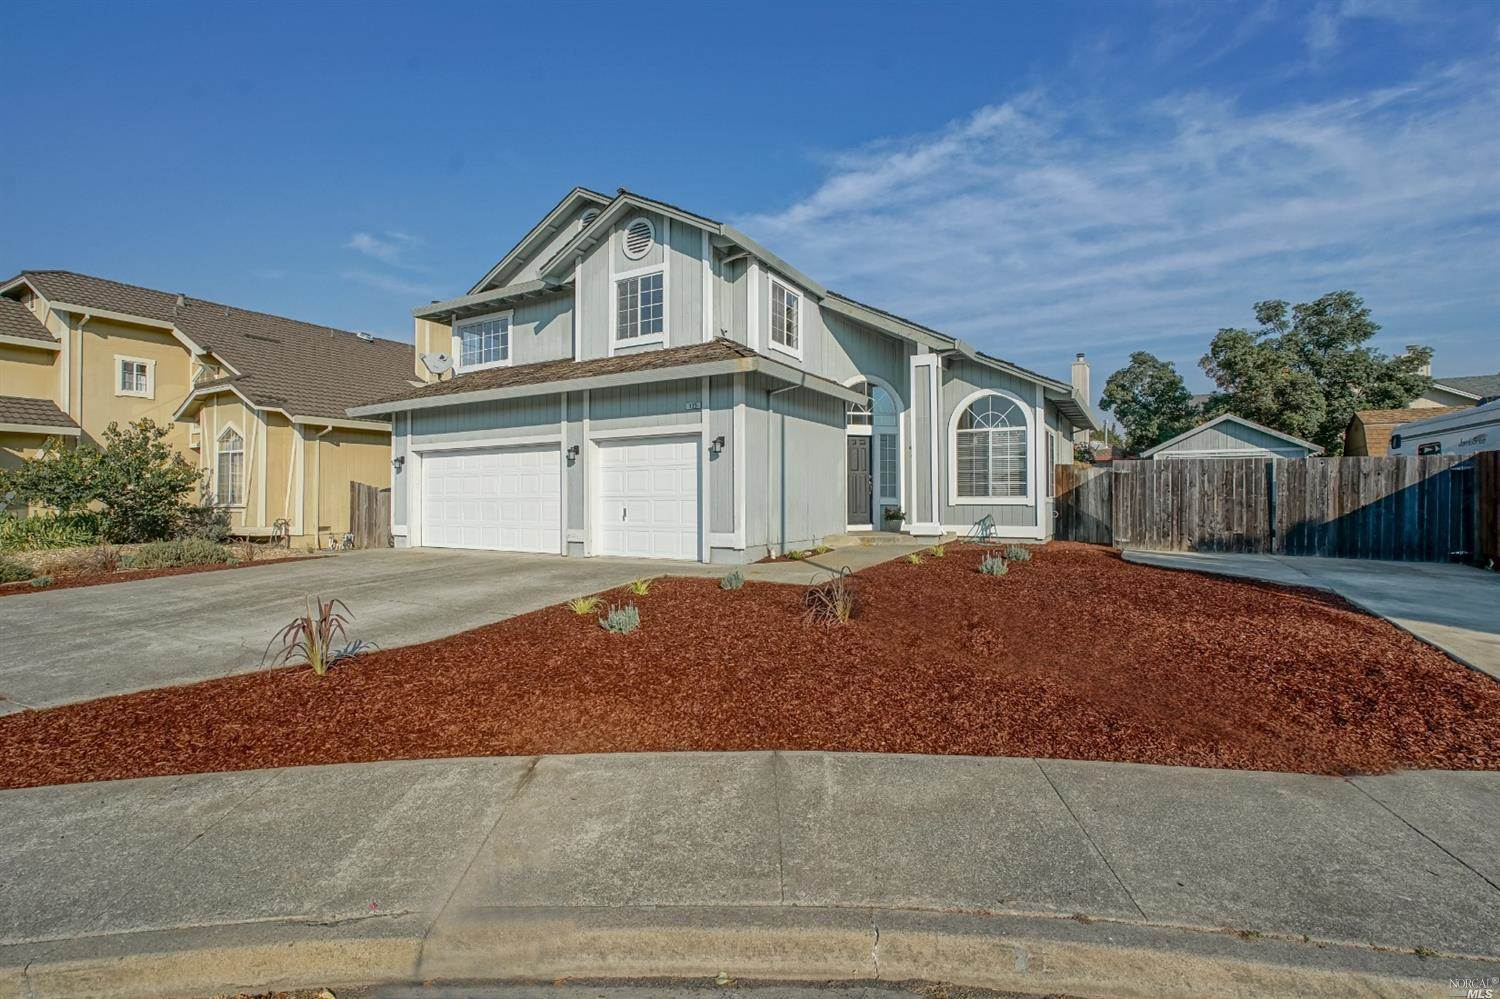 125 Nottingham Way, Windsor, CA 95492